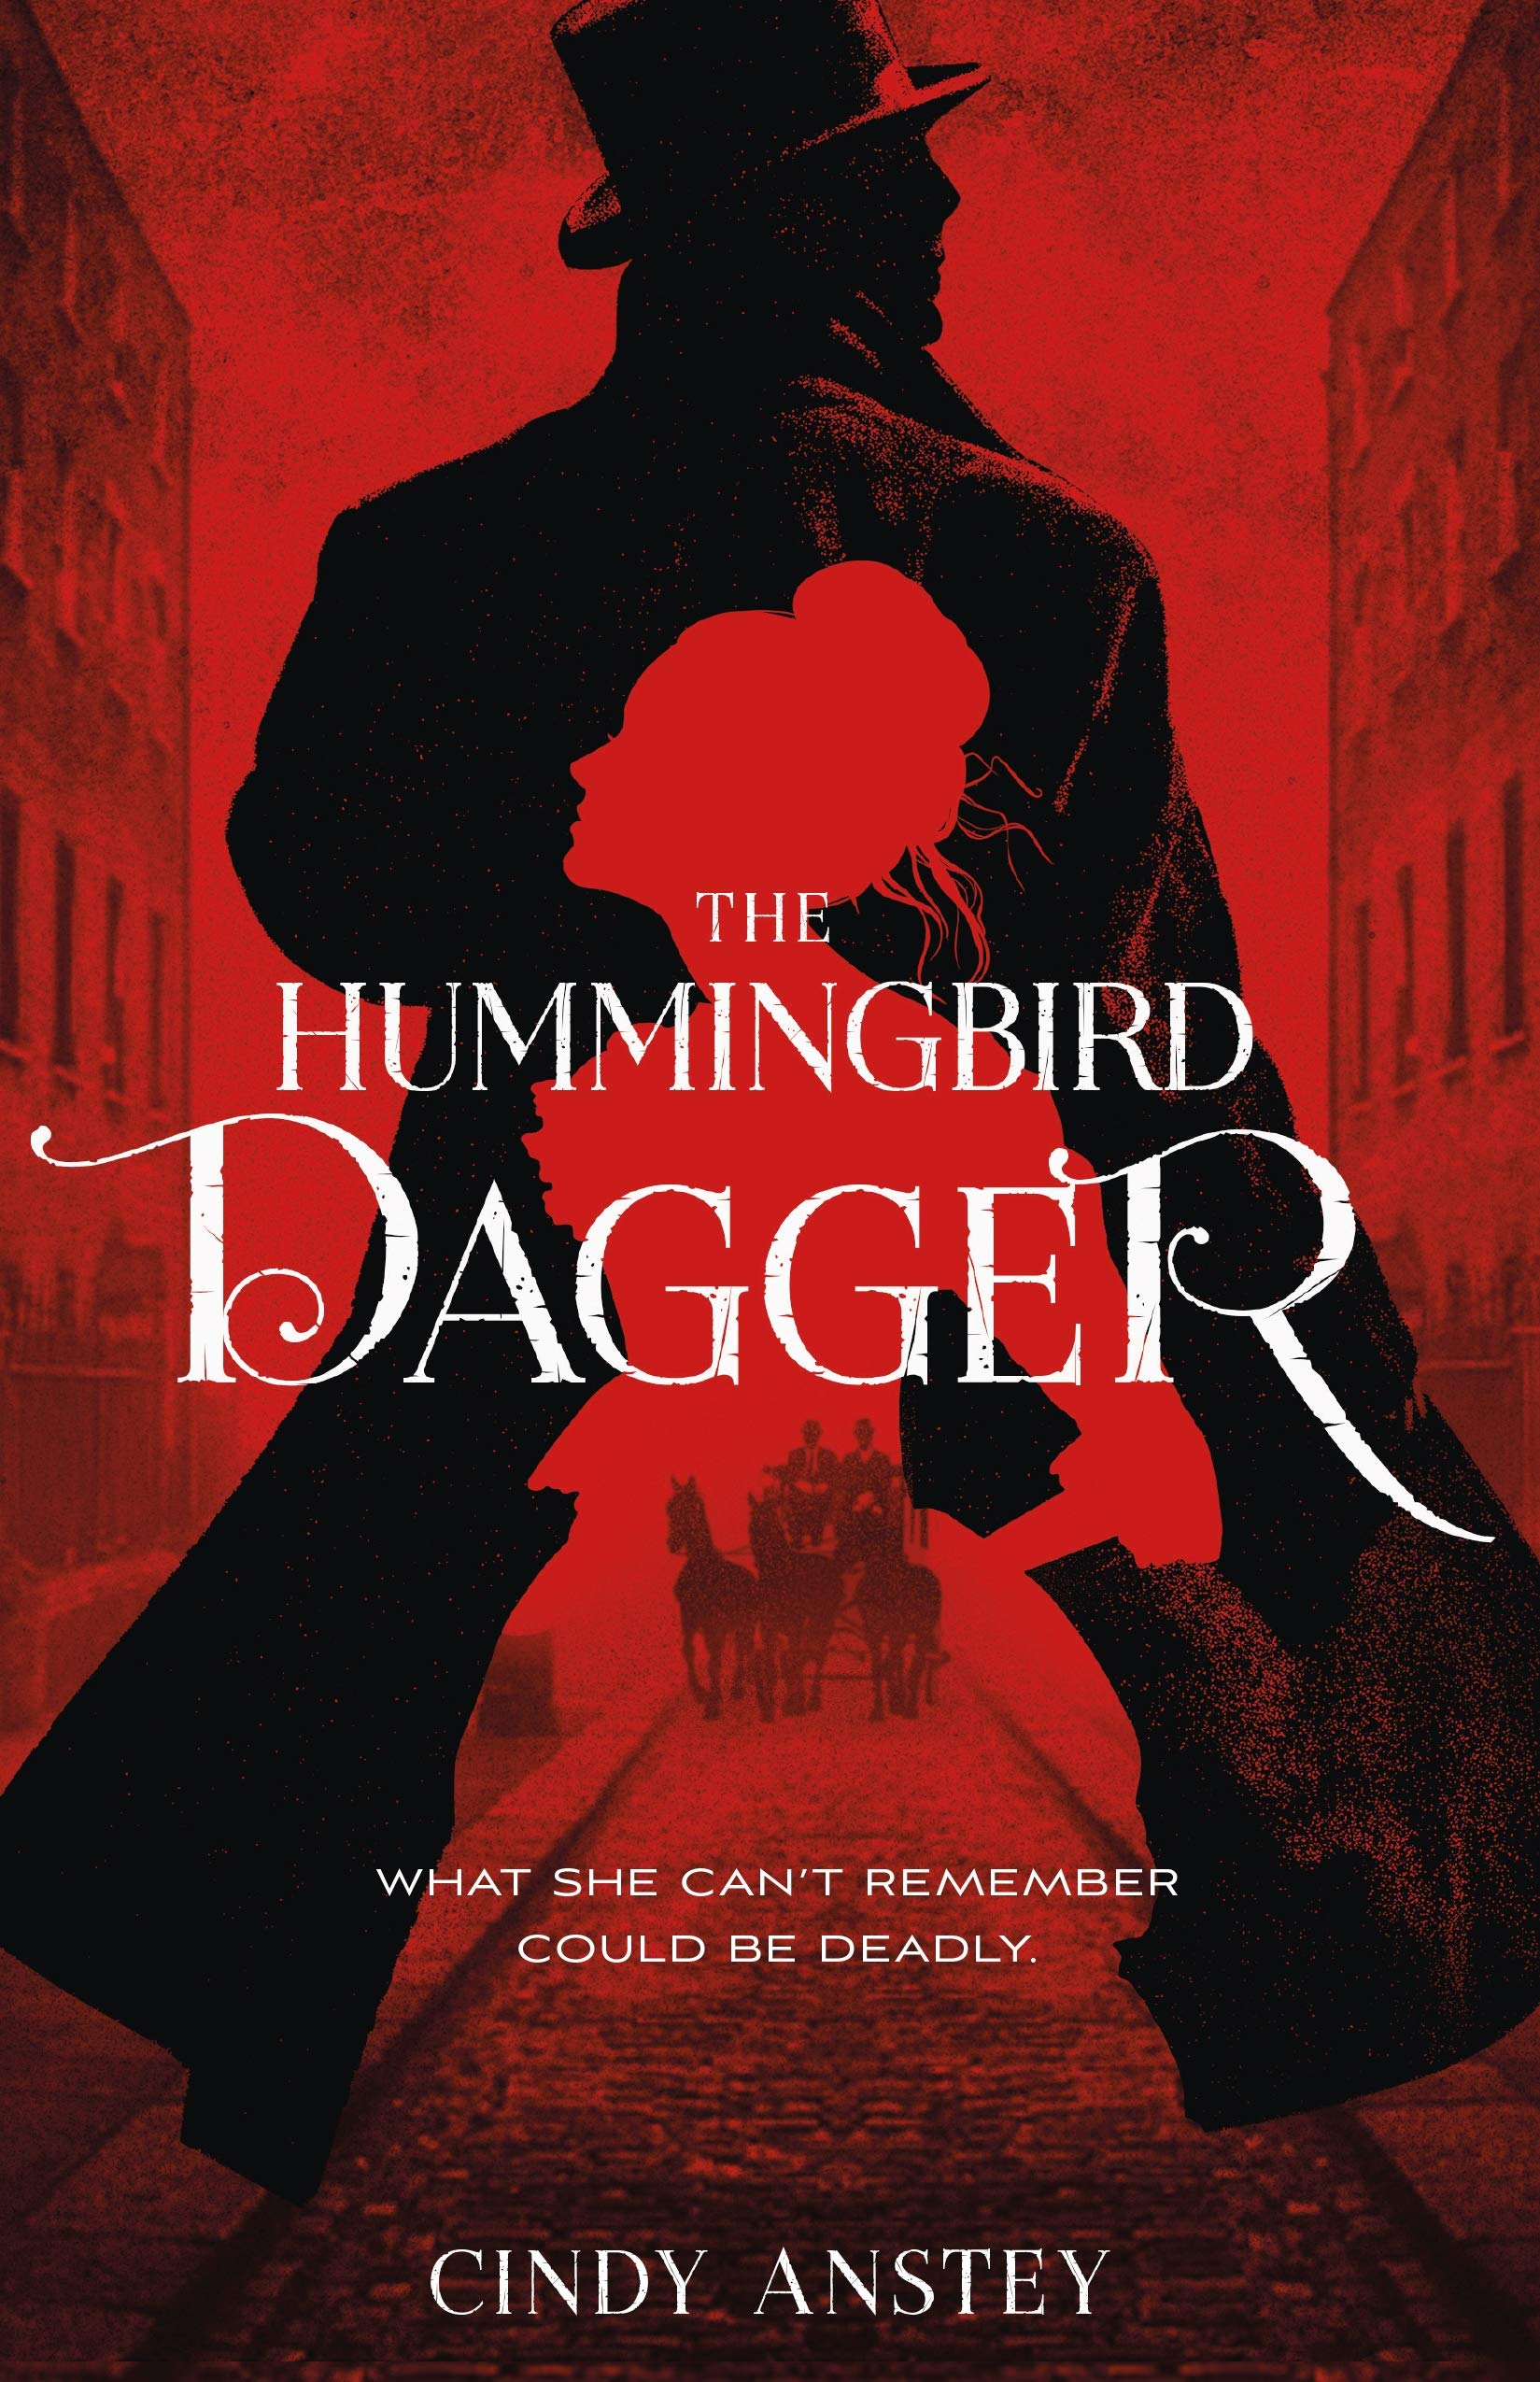 Amazon.com: The Hummingbird Dagger (9781250174895): Anstey, Cindy ...